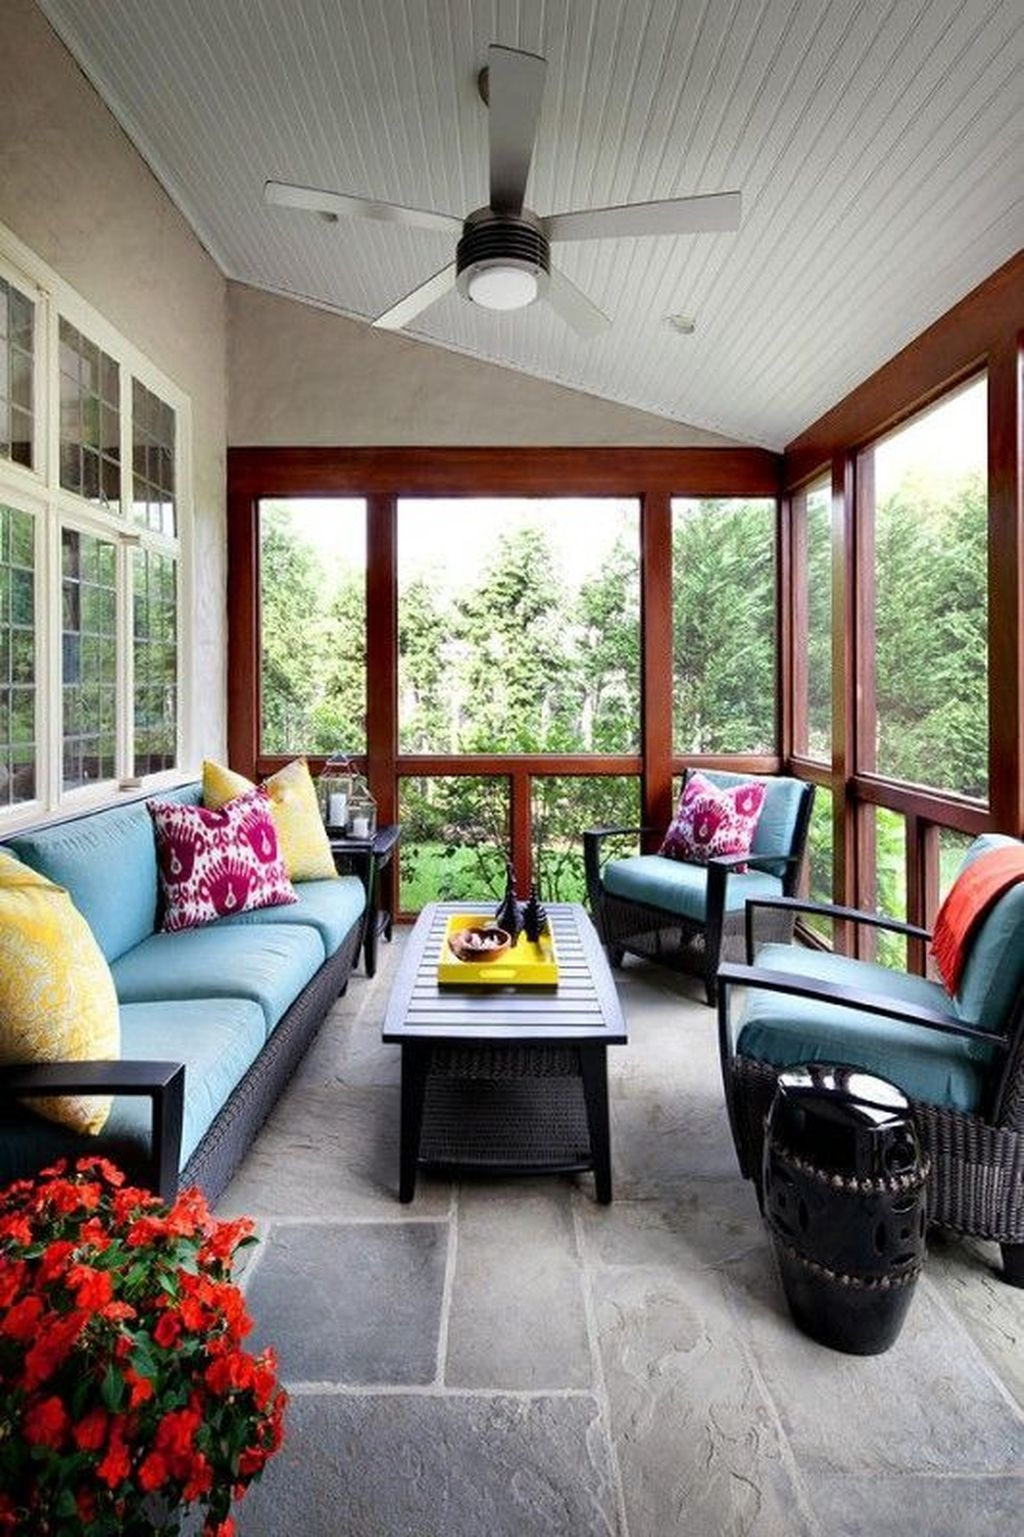 Brilliant Closed Balcony Design Ideas To Enjoy In All Weather Conditions03